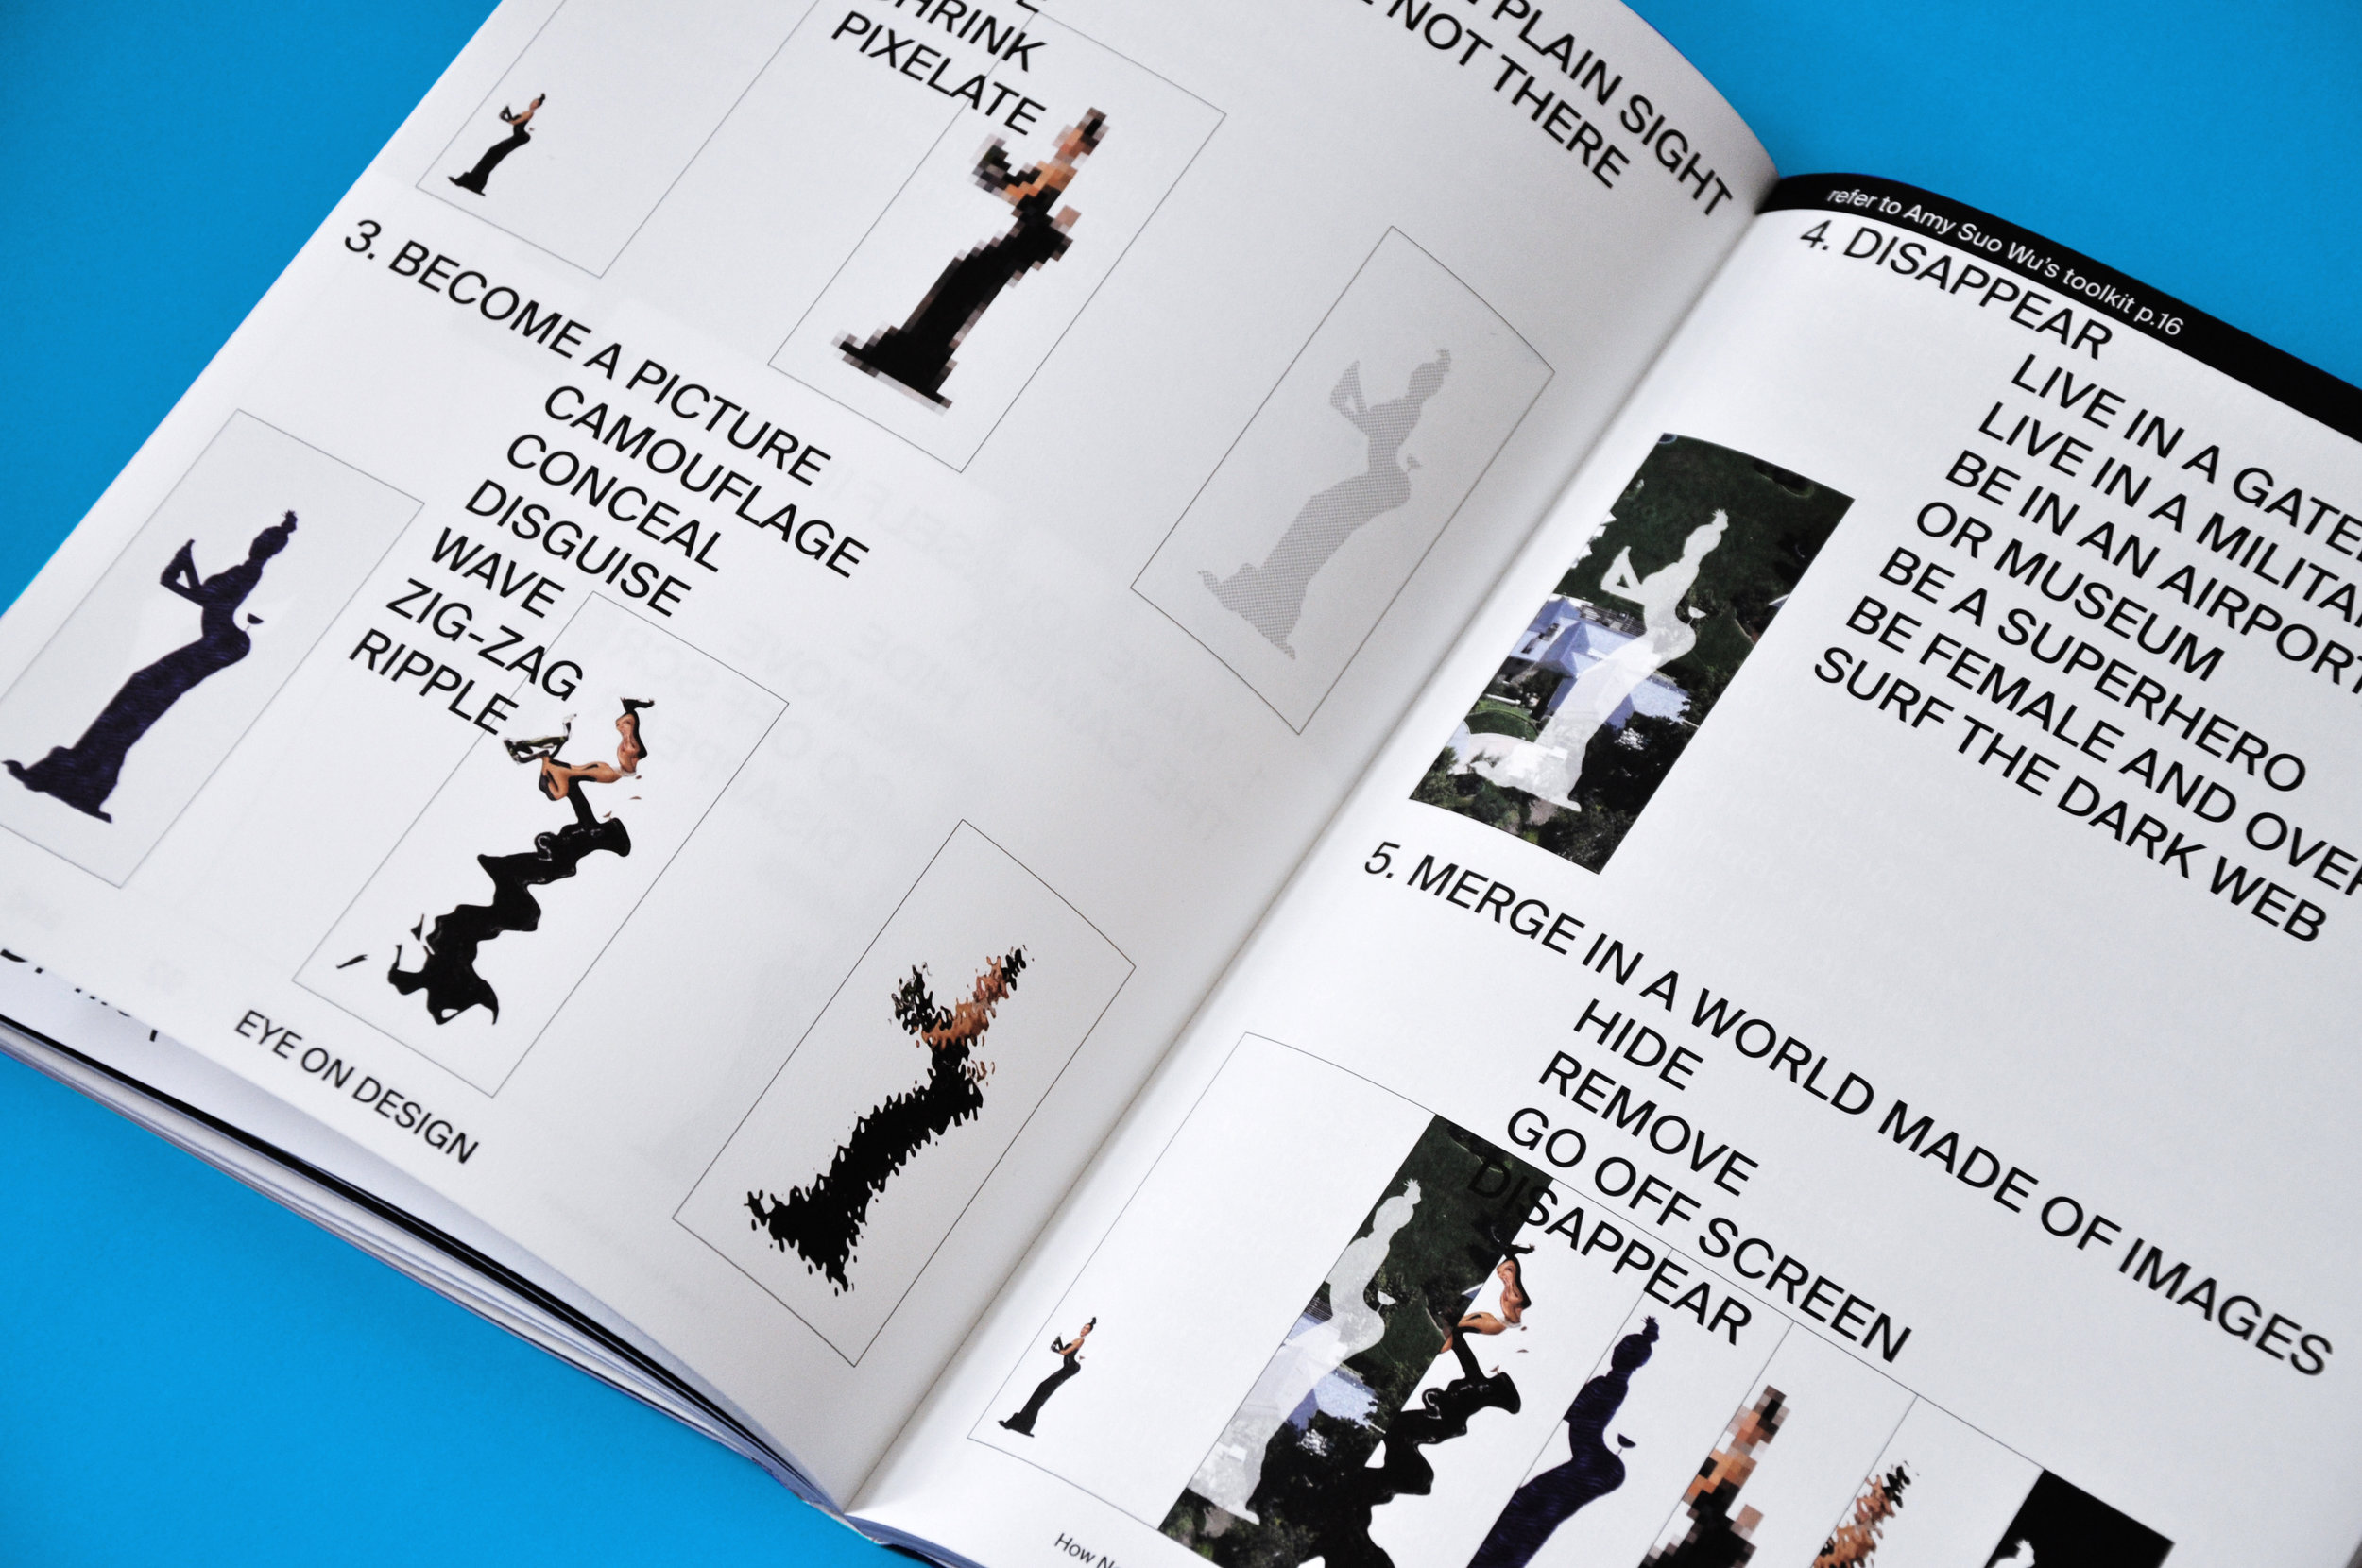 Tribute to  Hito Steyerl  featured in  AIGA Eye on Design 's inaugural issue, invisible - more info  here